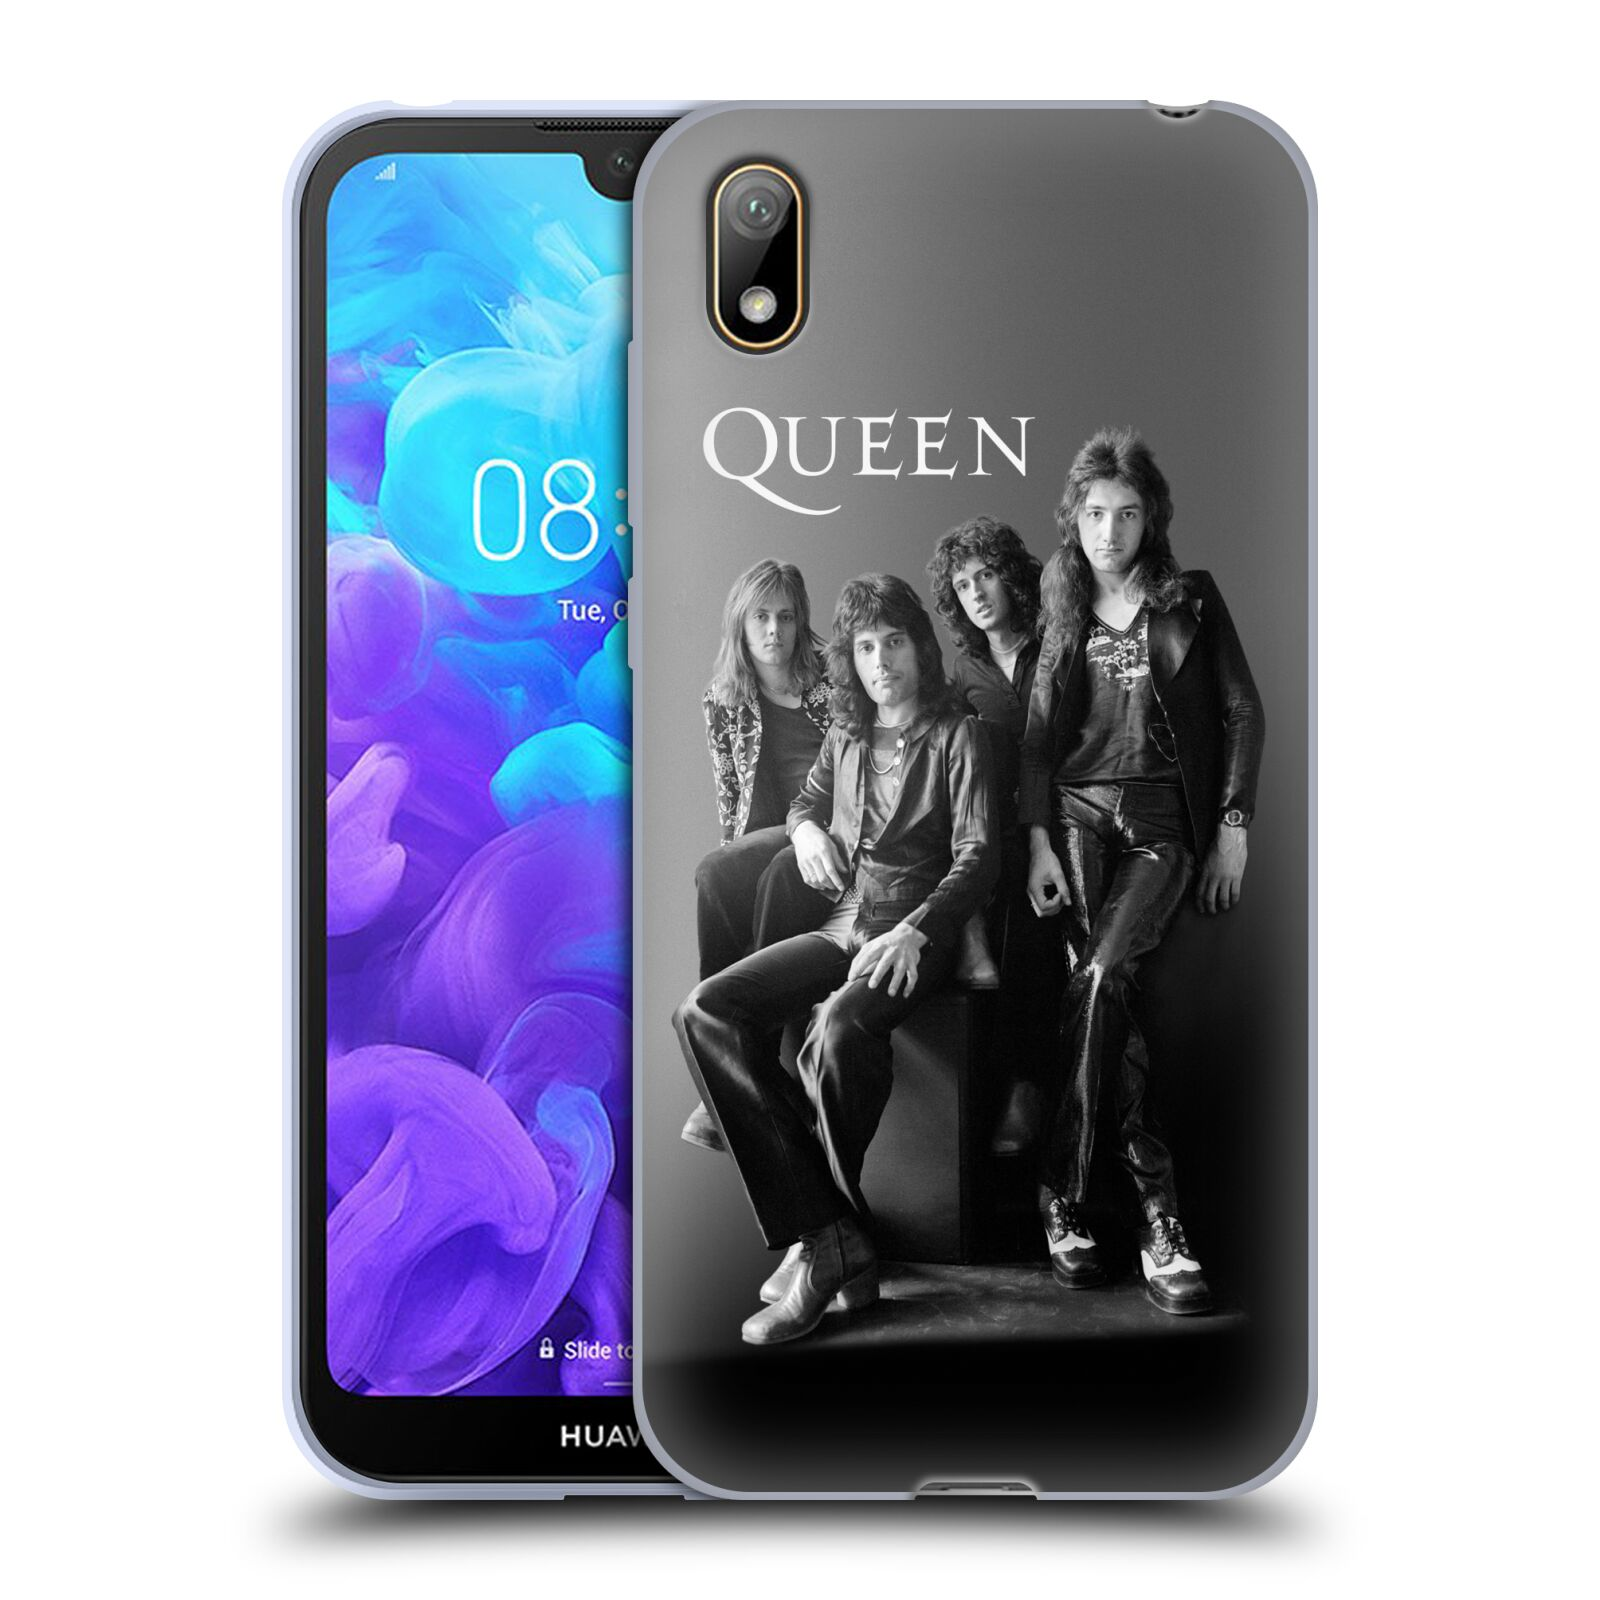 Silikonové pouzdro na mobil Huawei Y5 (2019) - Head Case - Queen - Skupina